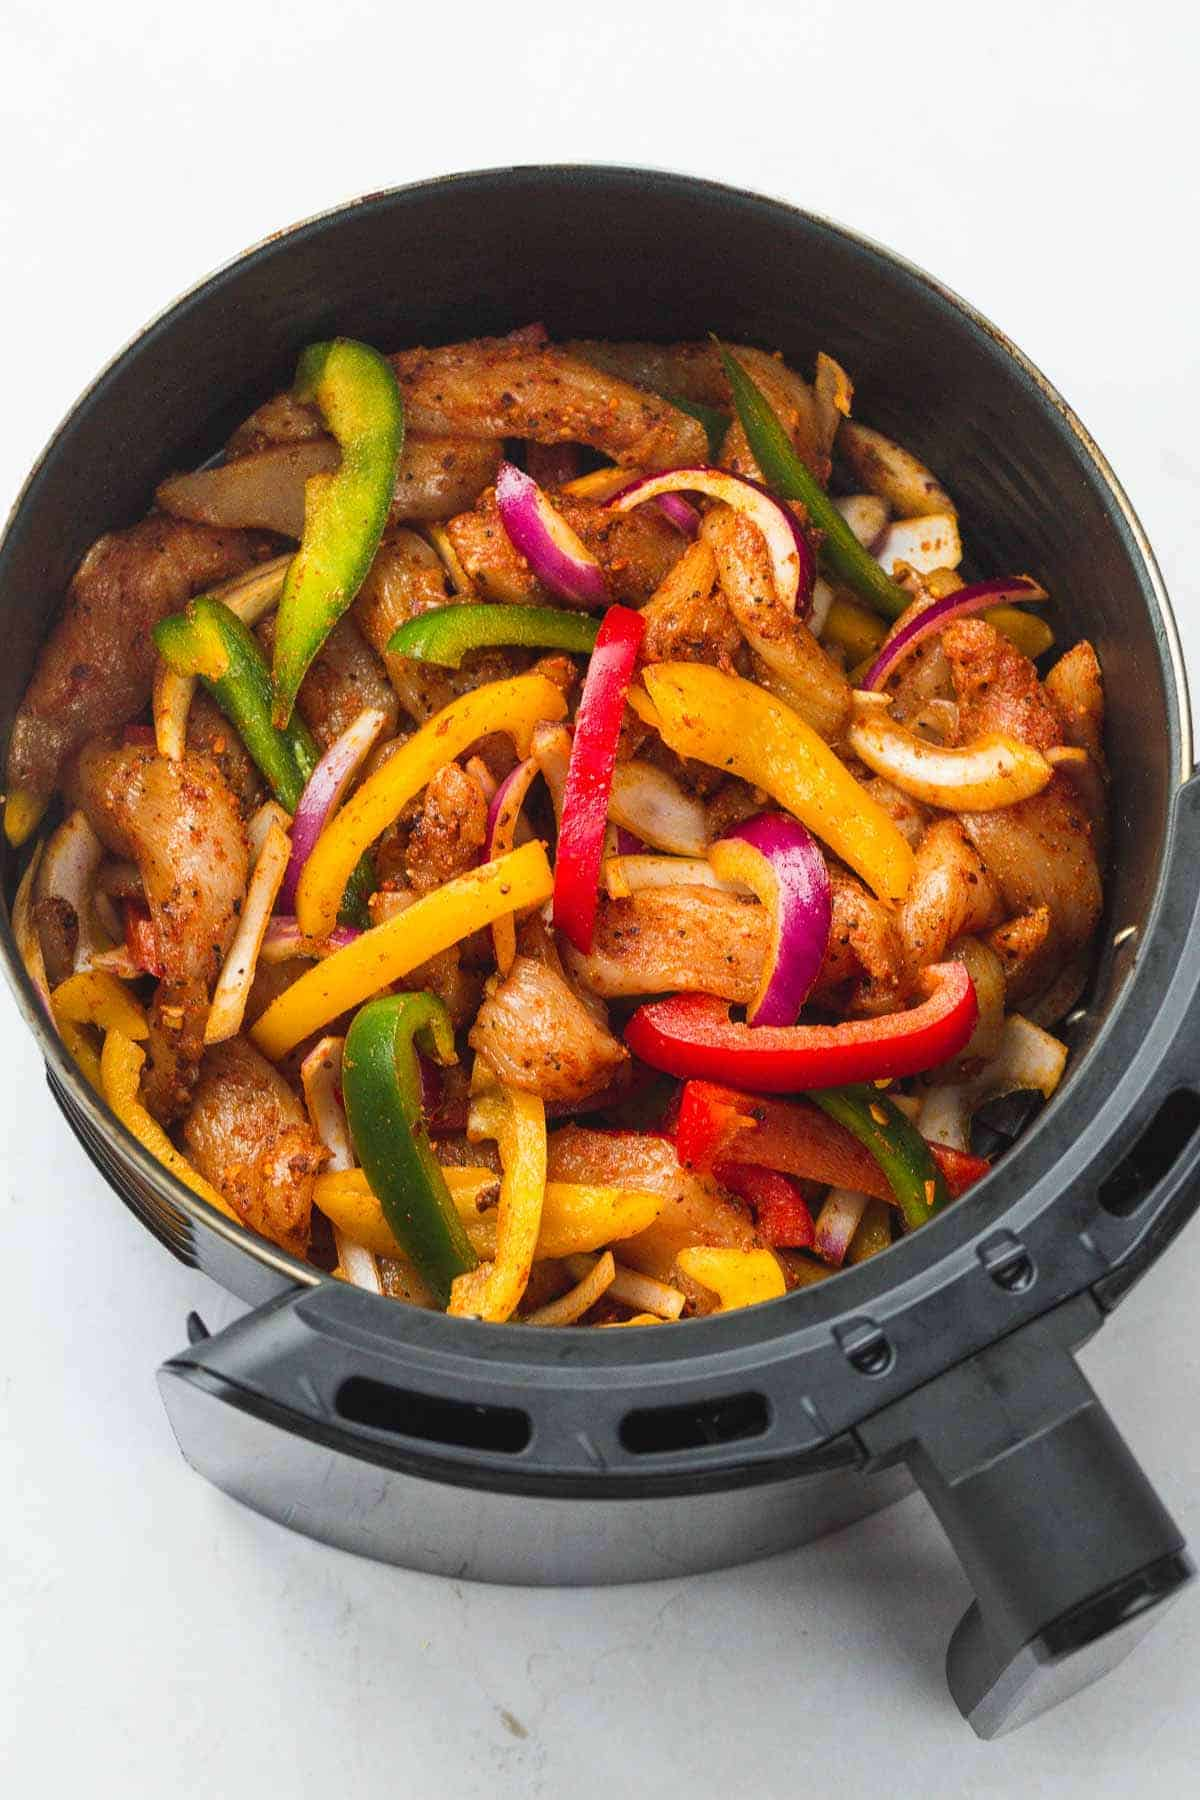 Raw chicken fajita strips and bell peppers in an air fryer basket.